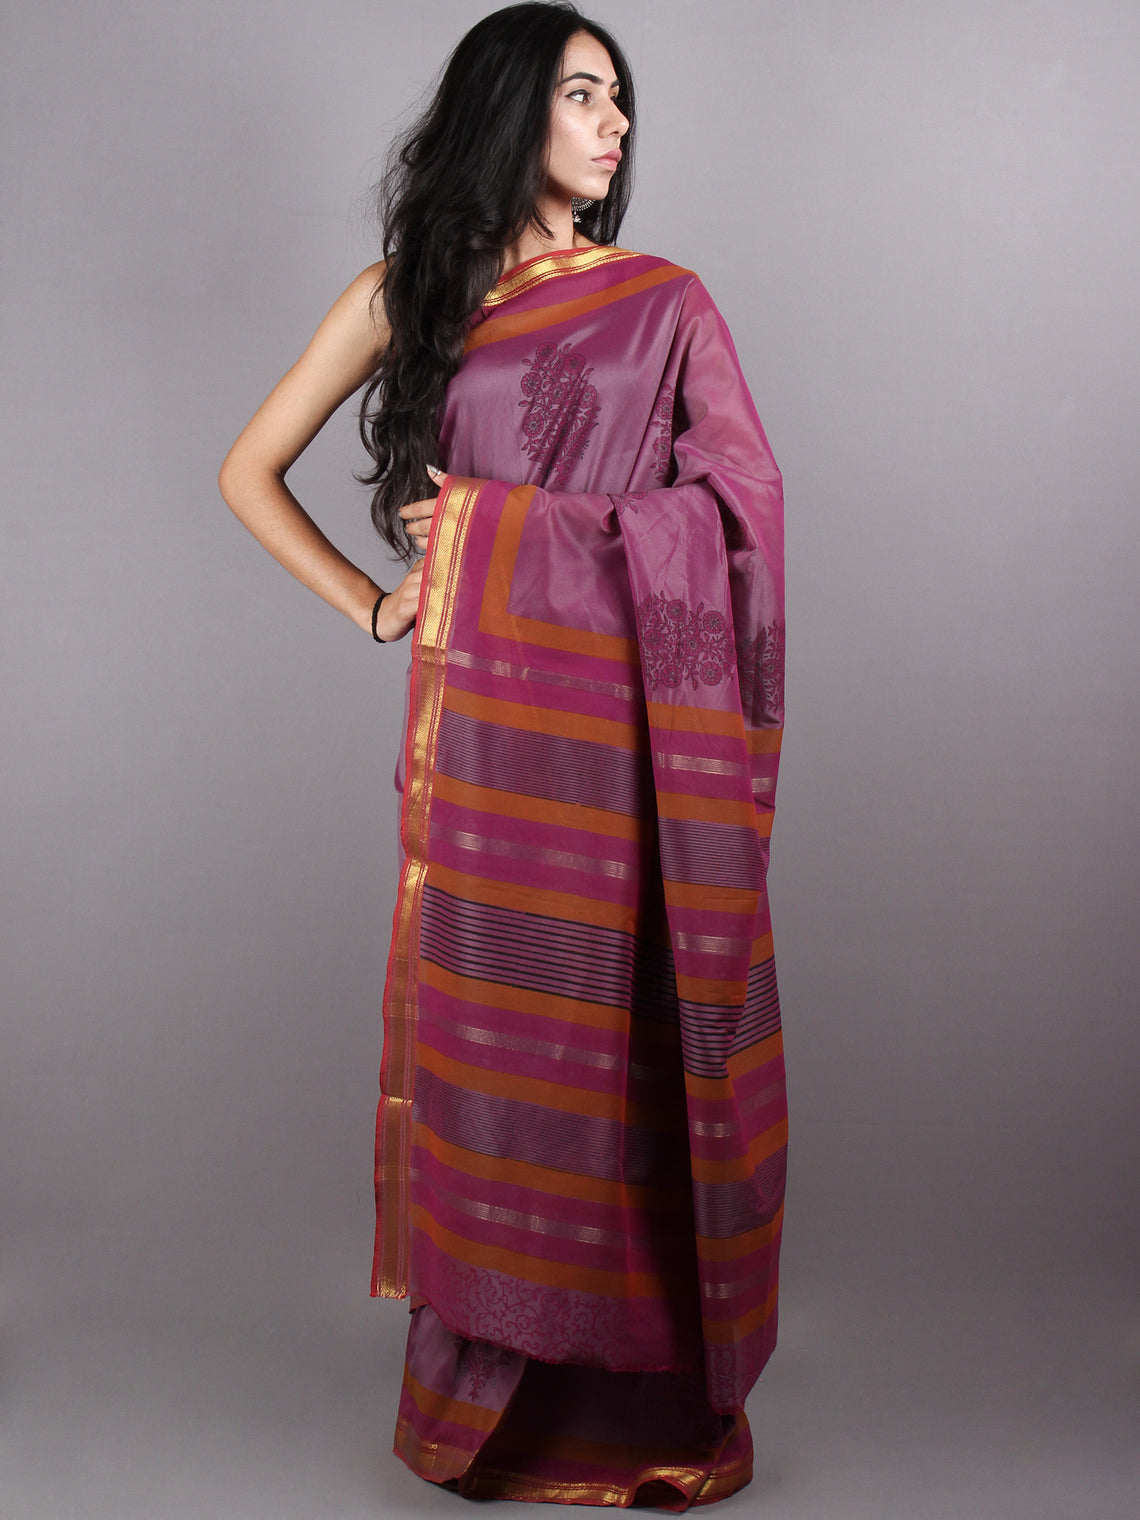 Magenta Maroon Mono Chanderi  Hand Block Printed Saree with Zari Border - S0317204